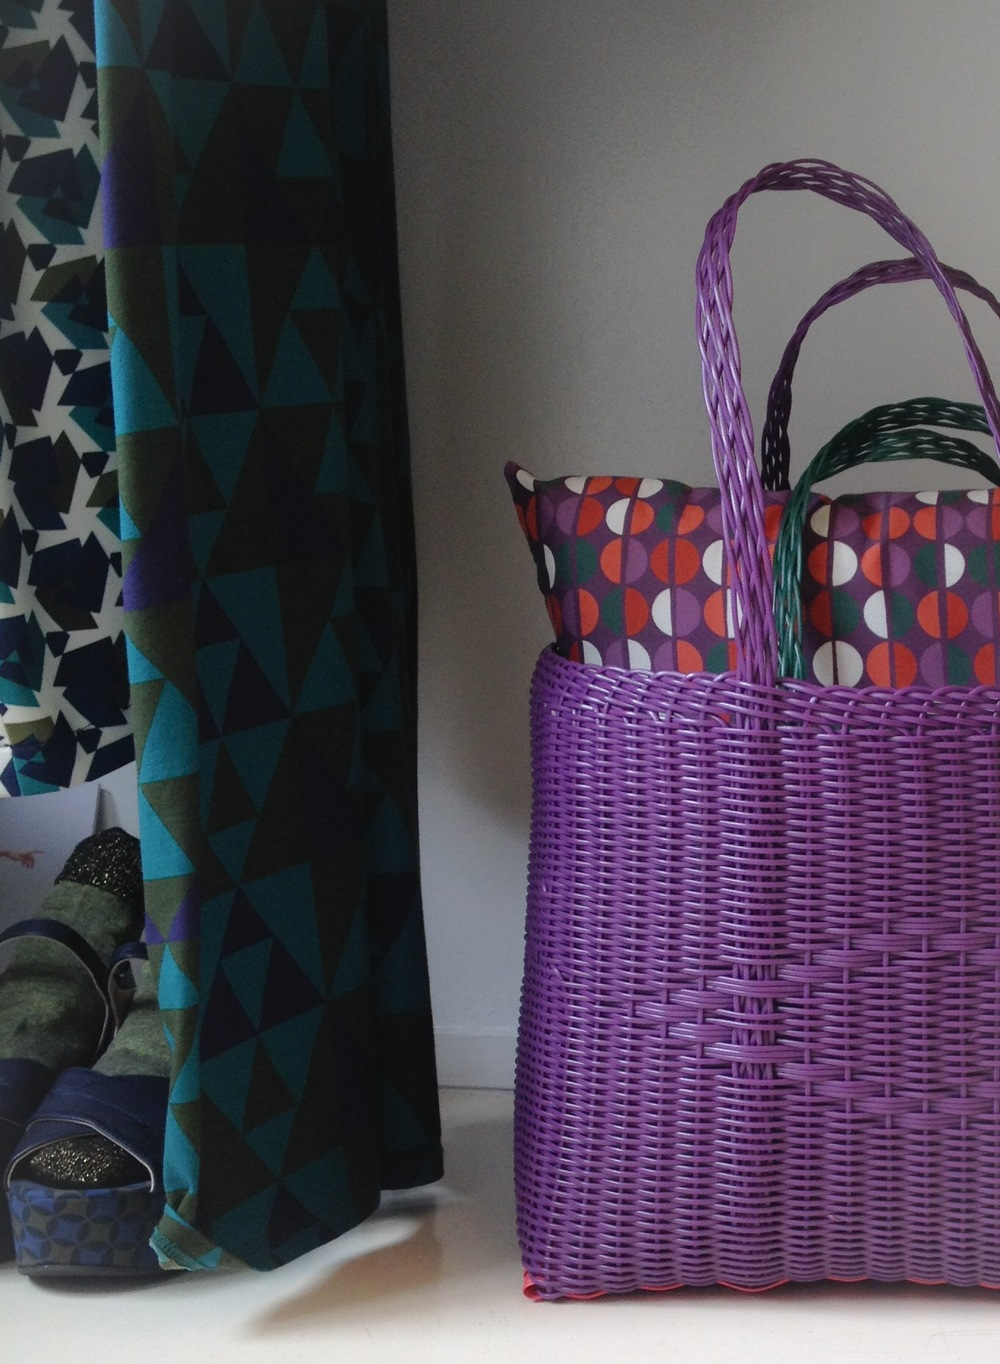 Medium Tote Bag on grape and strawberry. We love colors and patterns!